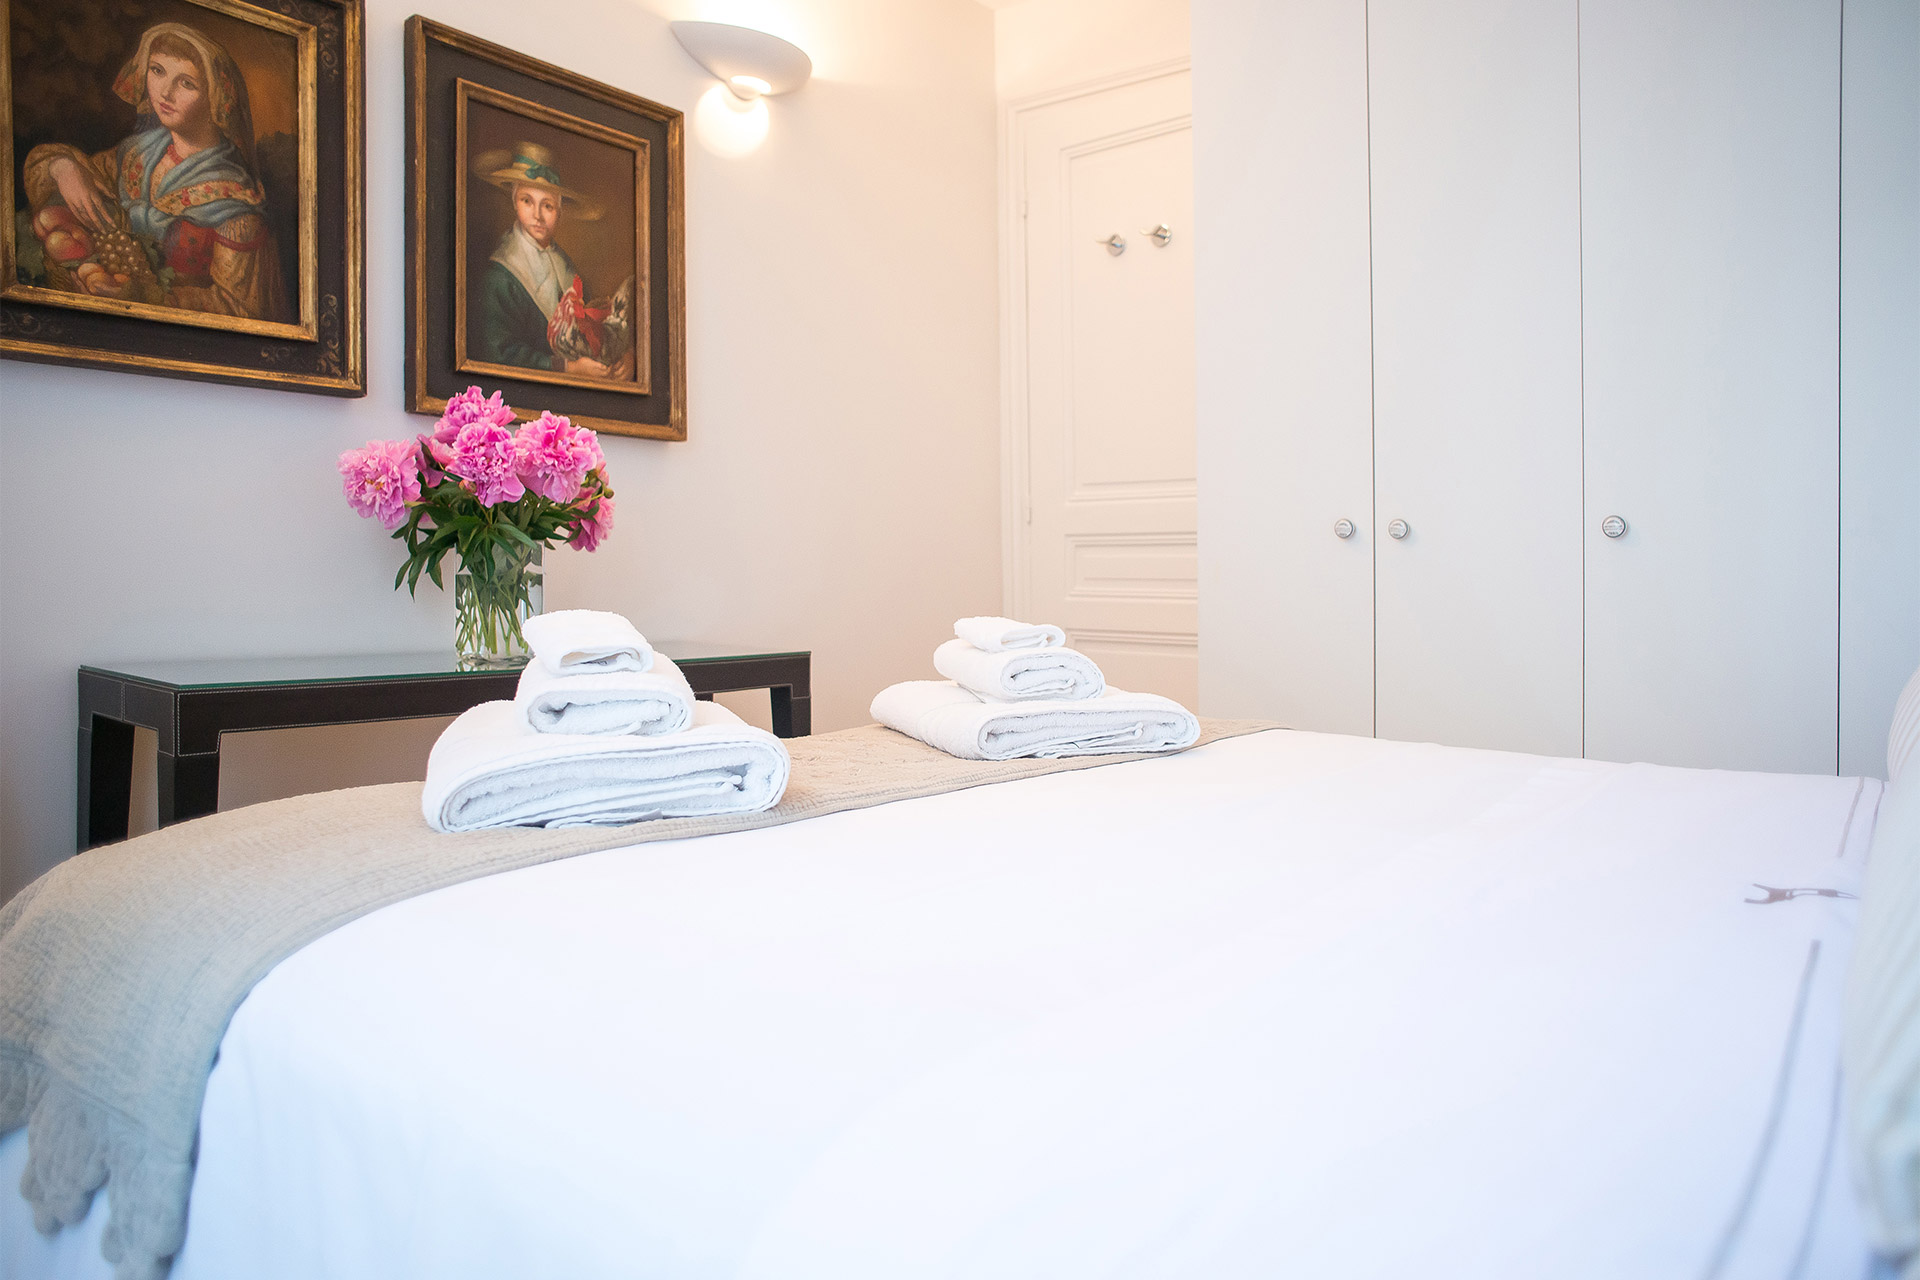 Large built in closets provide ample storage in the Bergerac vacation rental offered by Paris Perfect